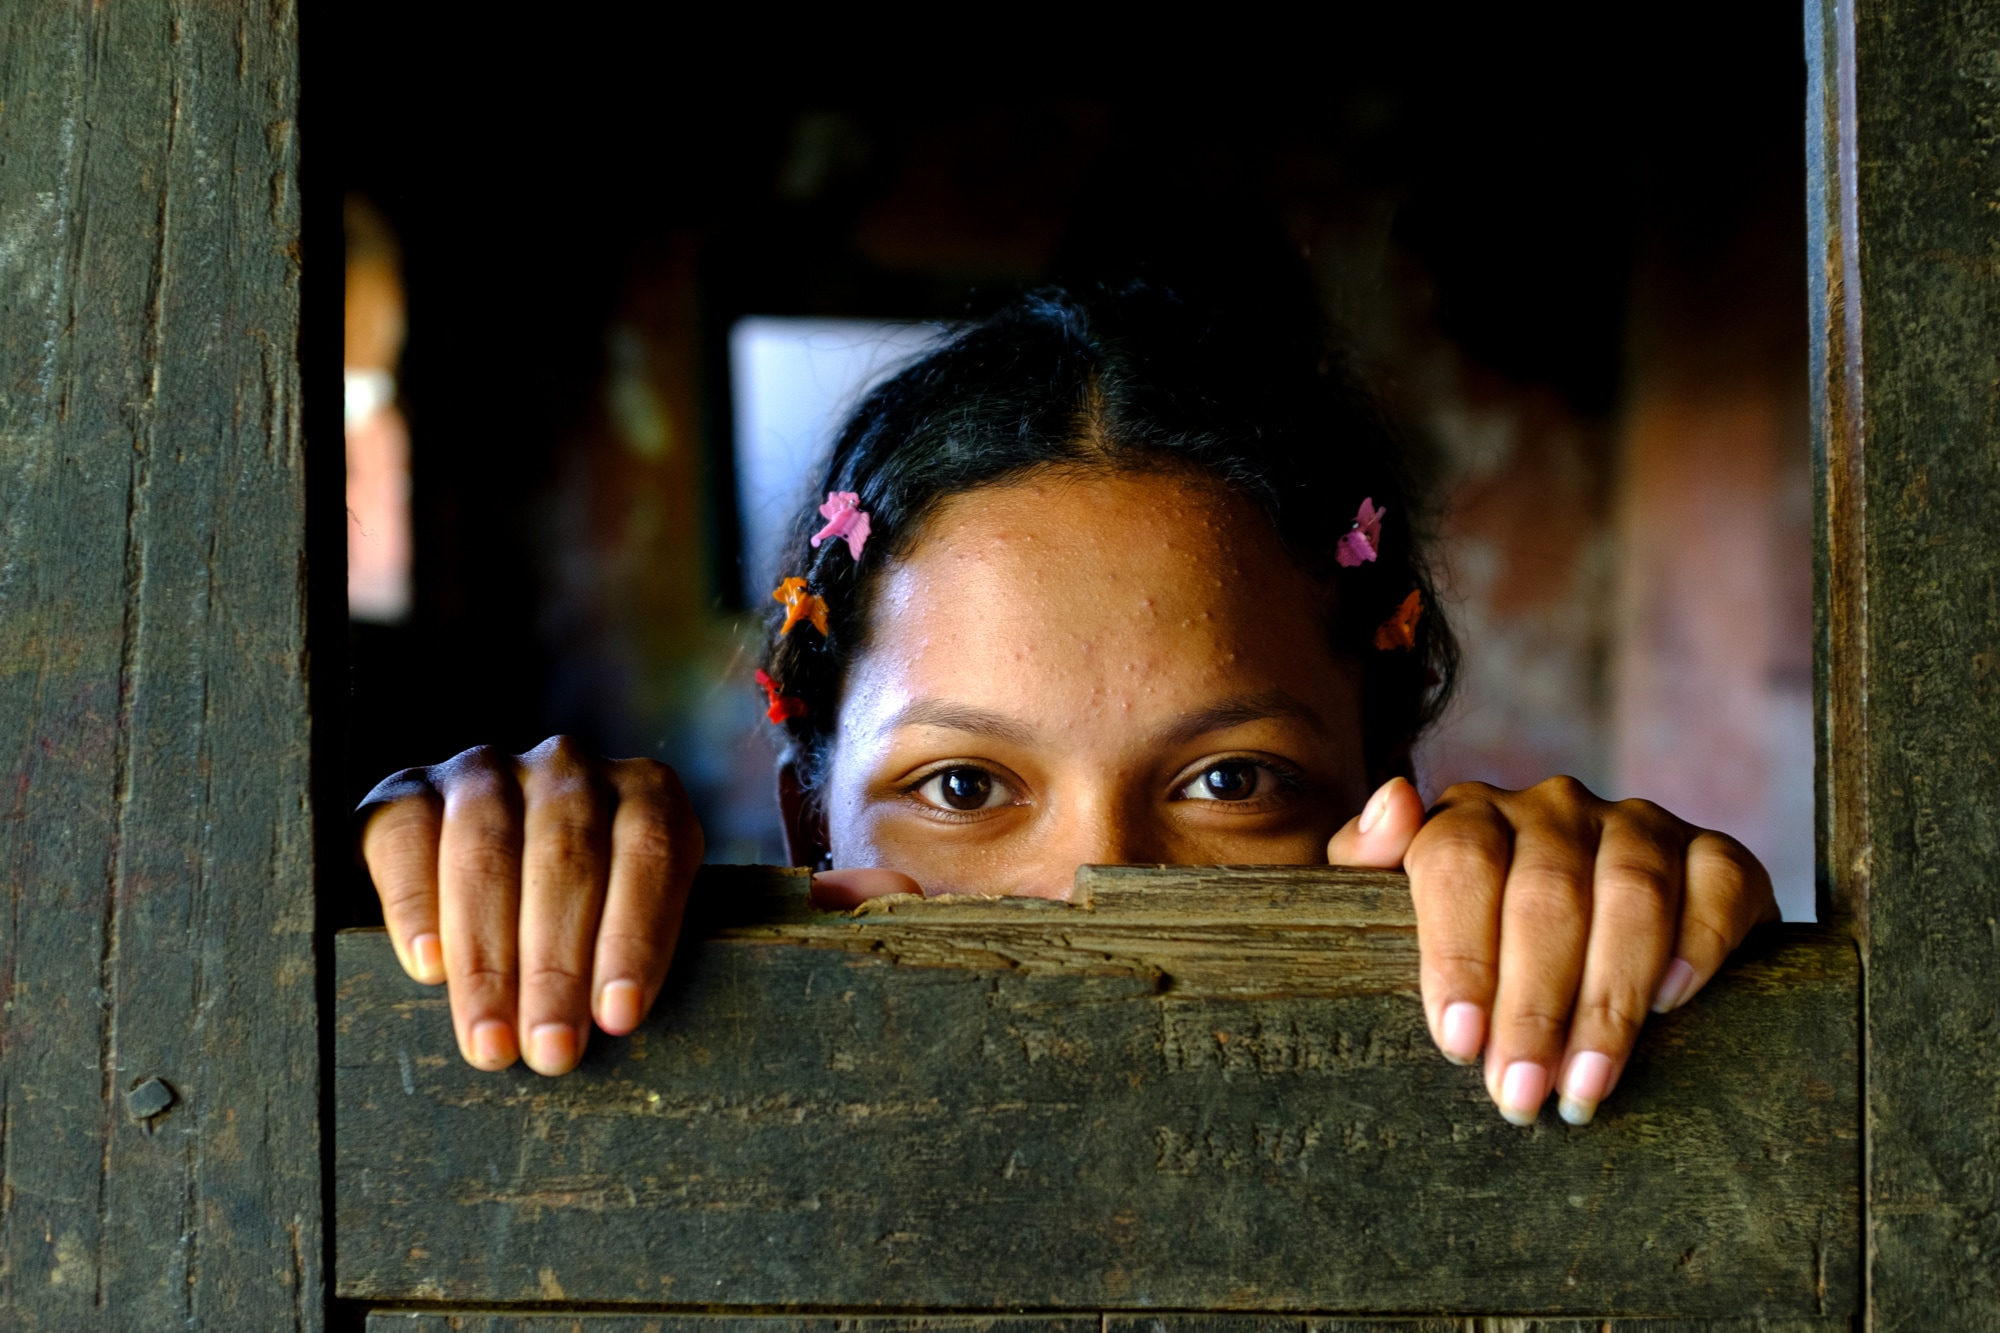 A young girl in Pokhara, Nepal poses for a picture